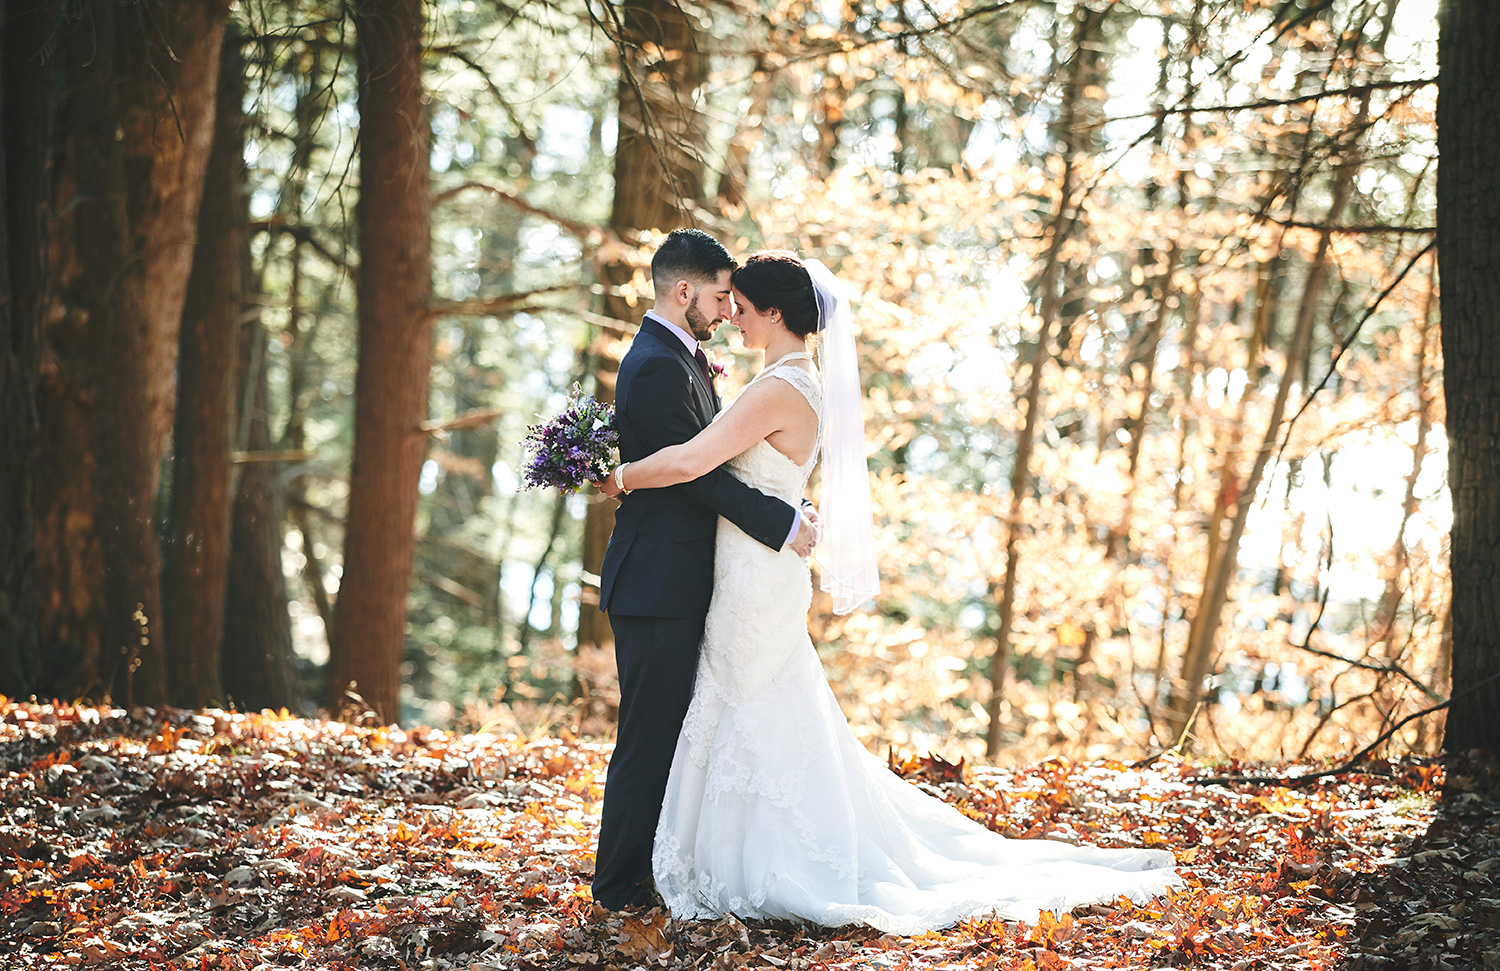 161119_ArrowParkLake&LodgeWedding_By_BriJohnsonWeddings_0067.jpg